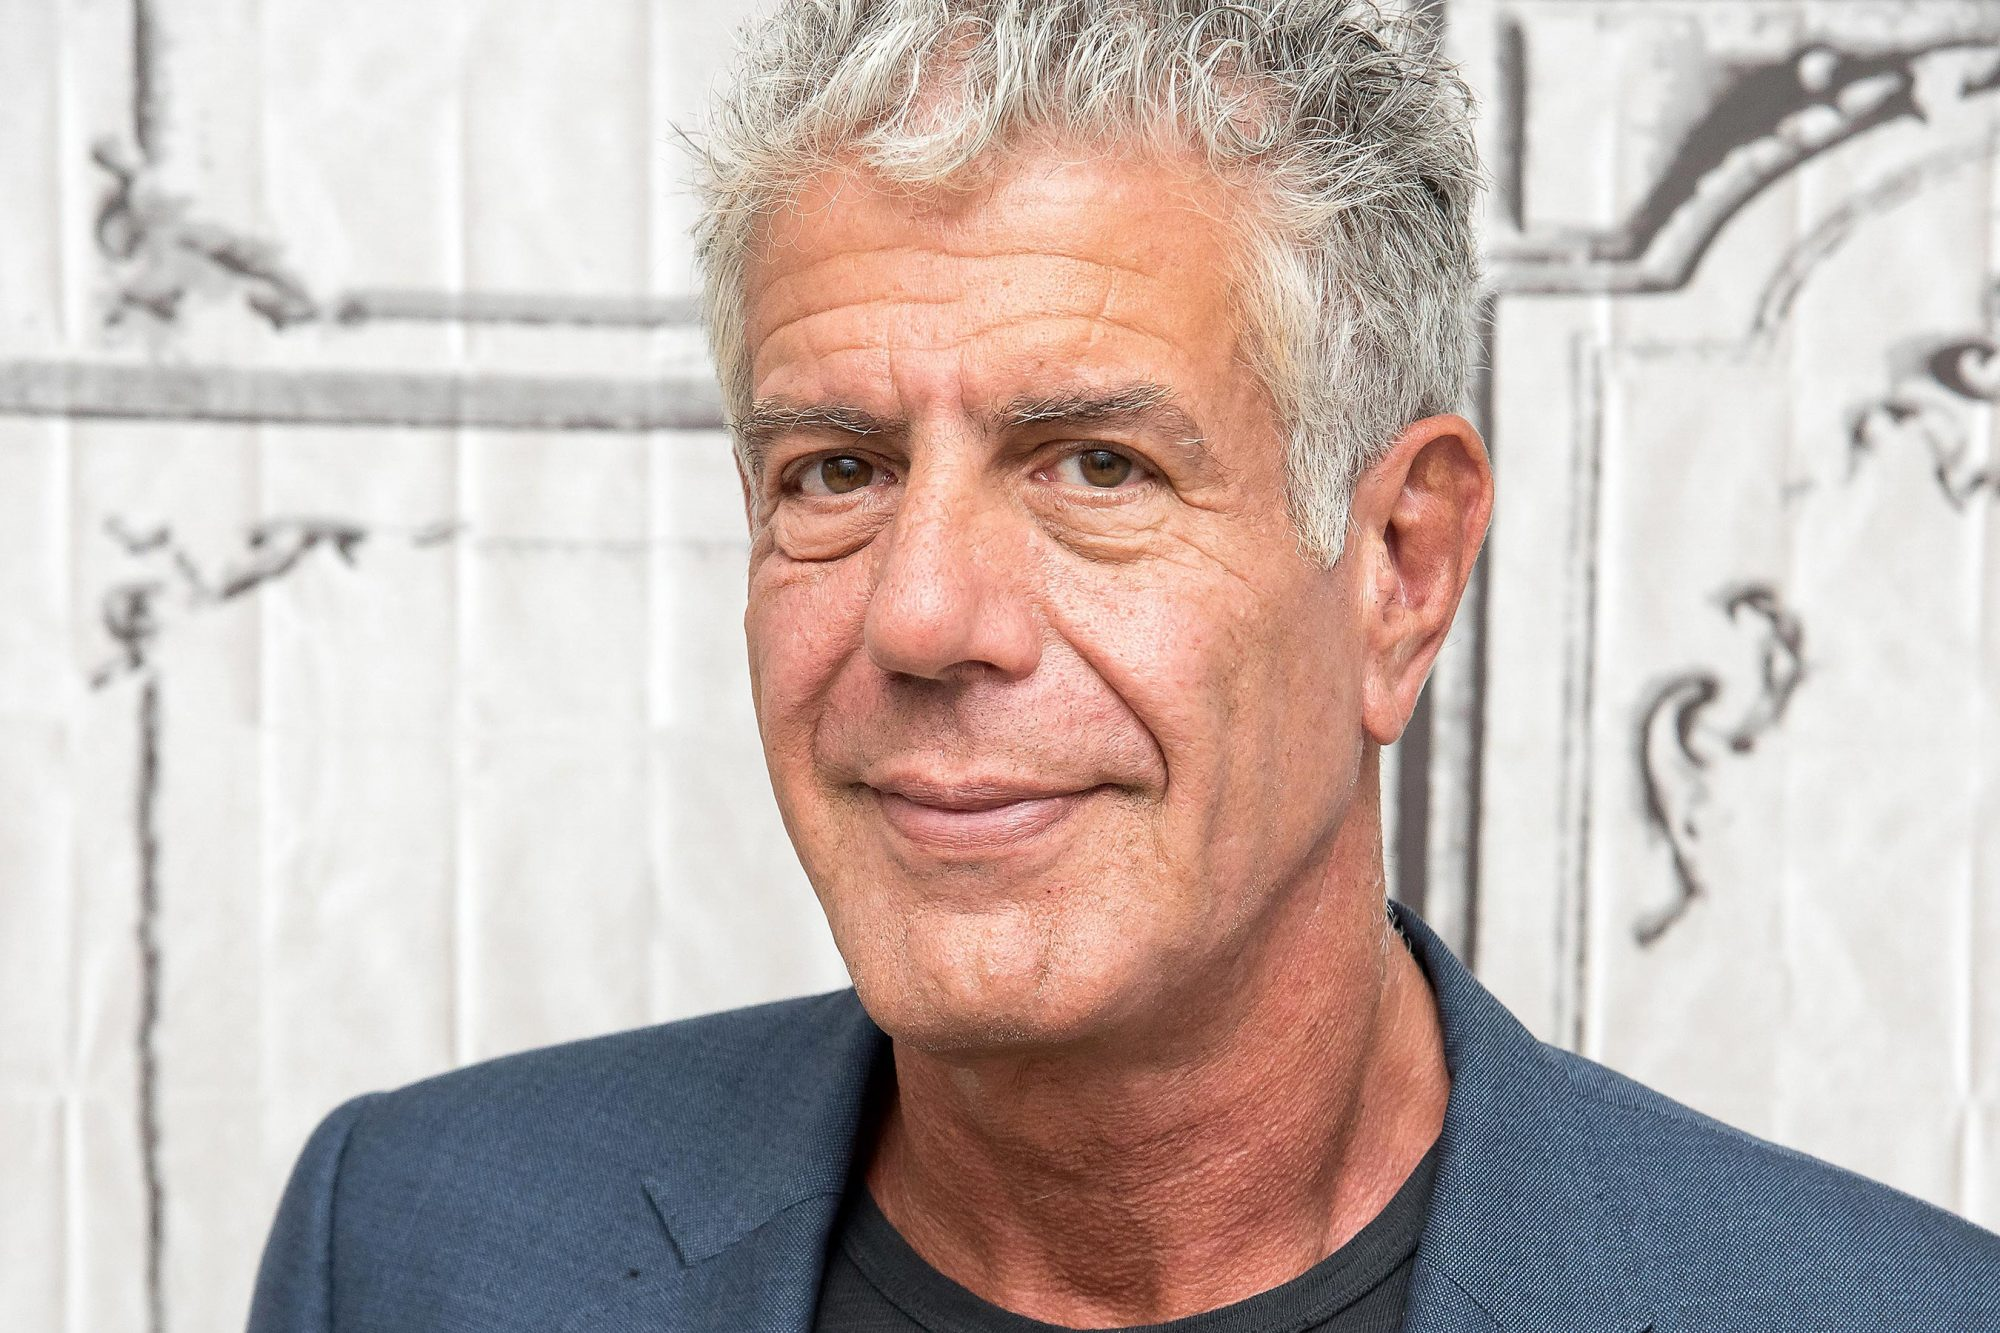 Chrissy Teigen, Gordon Ramsay และ More Mourn Death of Anthony Bourdain: 'Be at Peace Now'